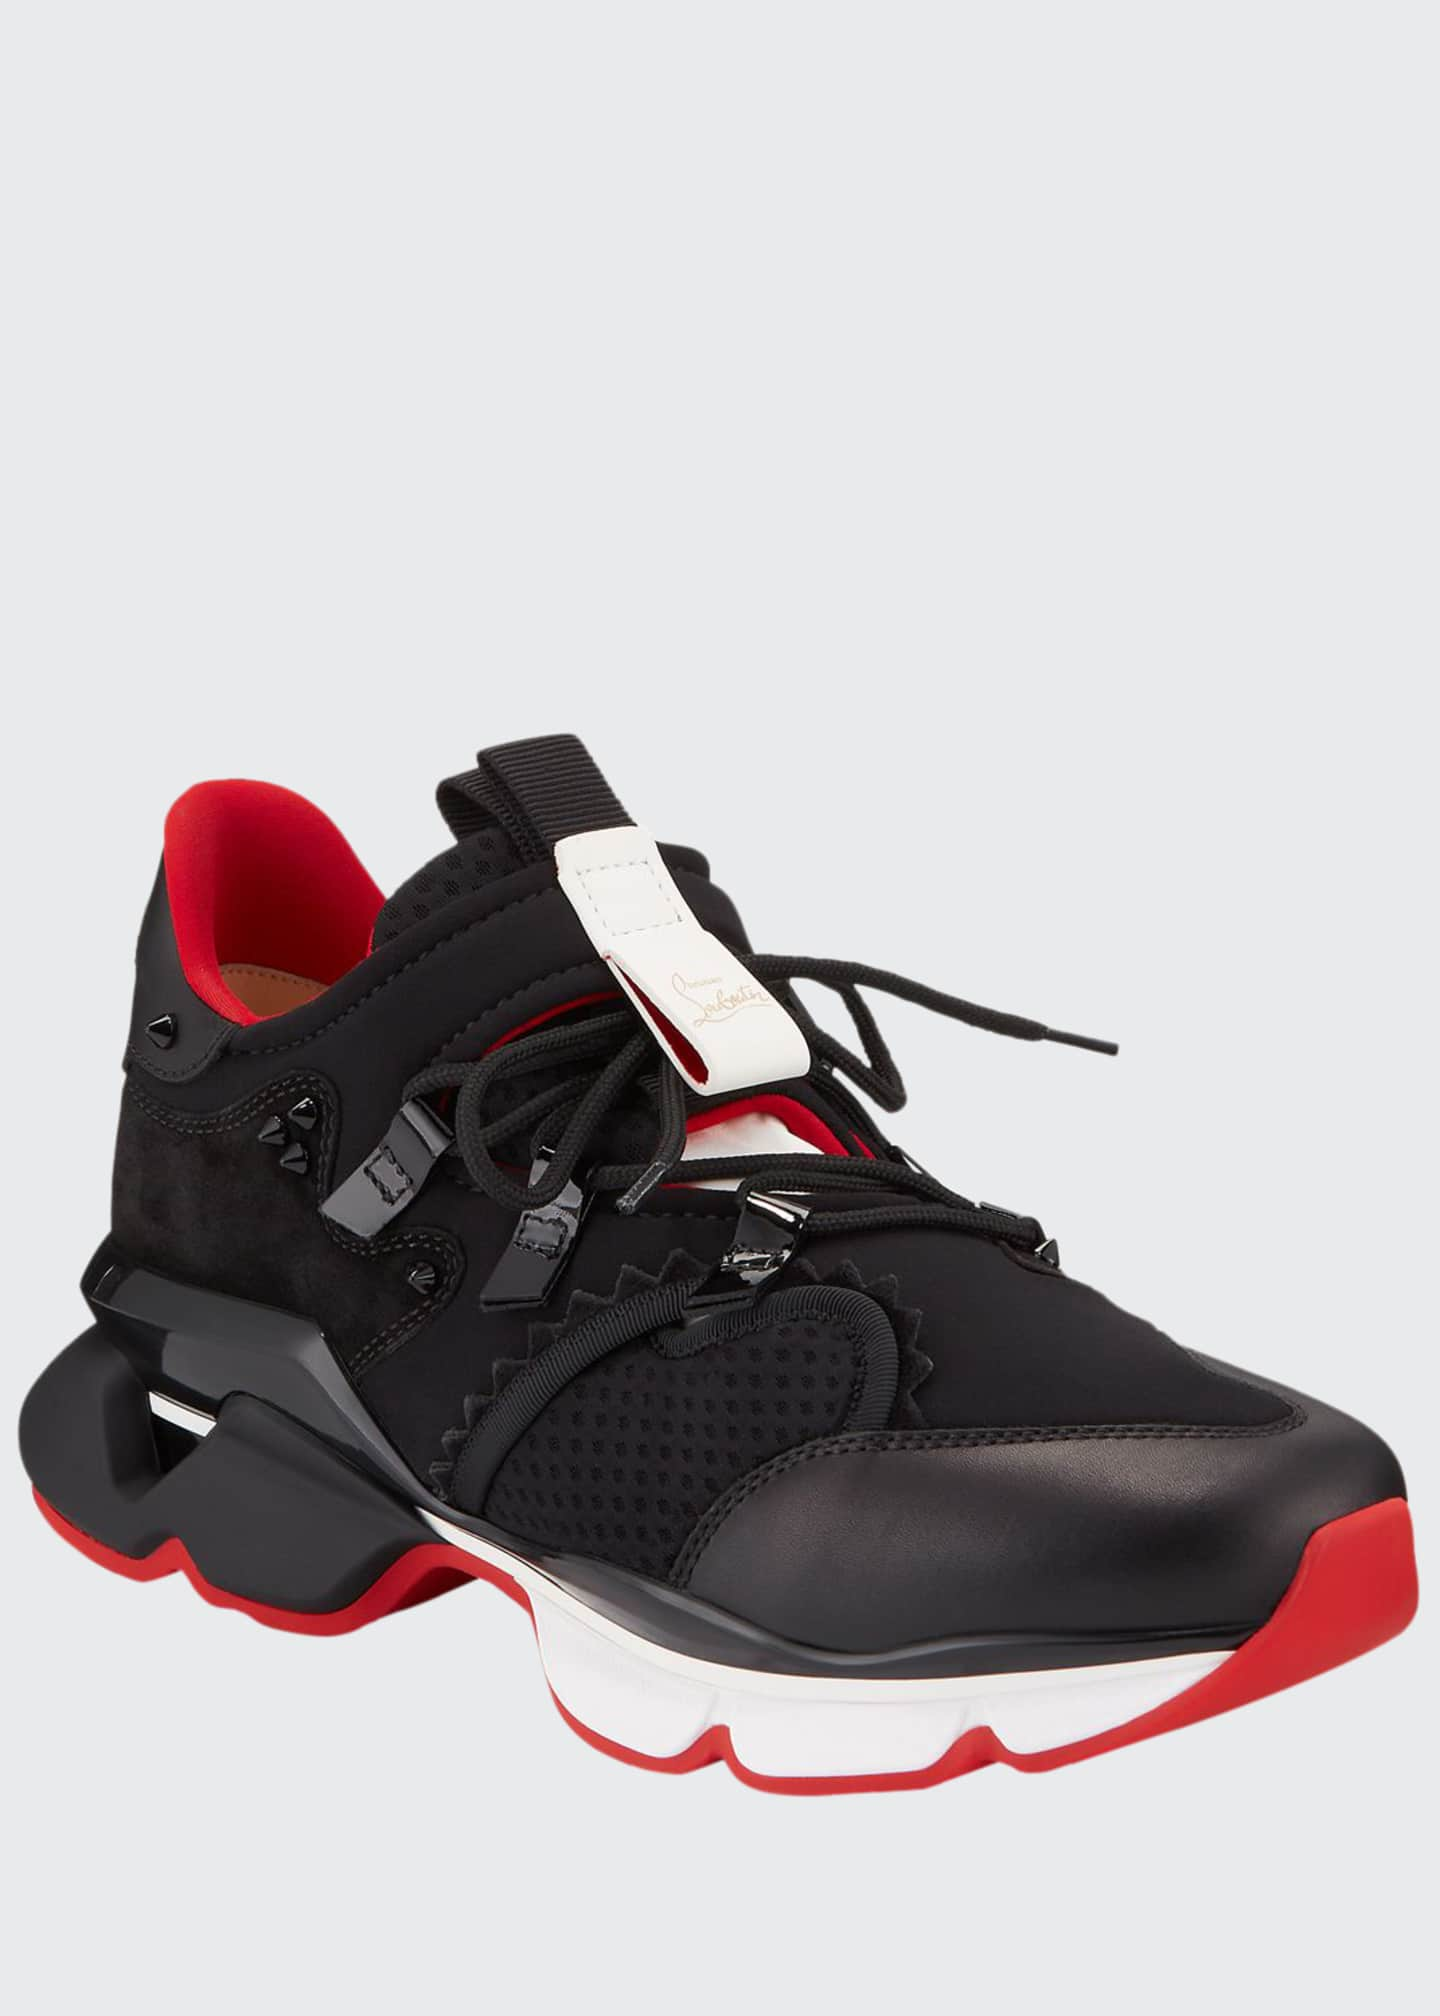 Christian Louboutin Men's Spiked-Trim Tricolor Active Sneakers